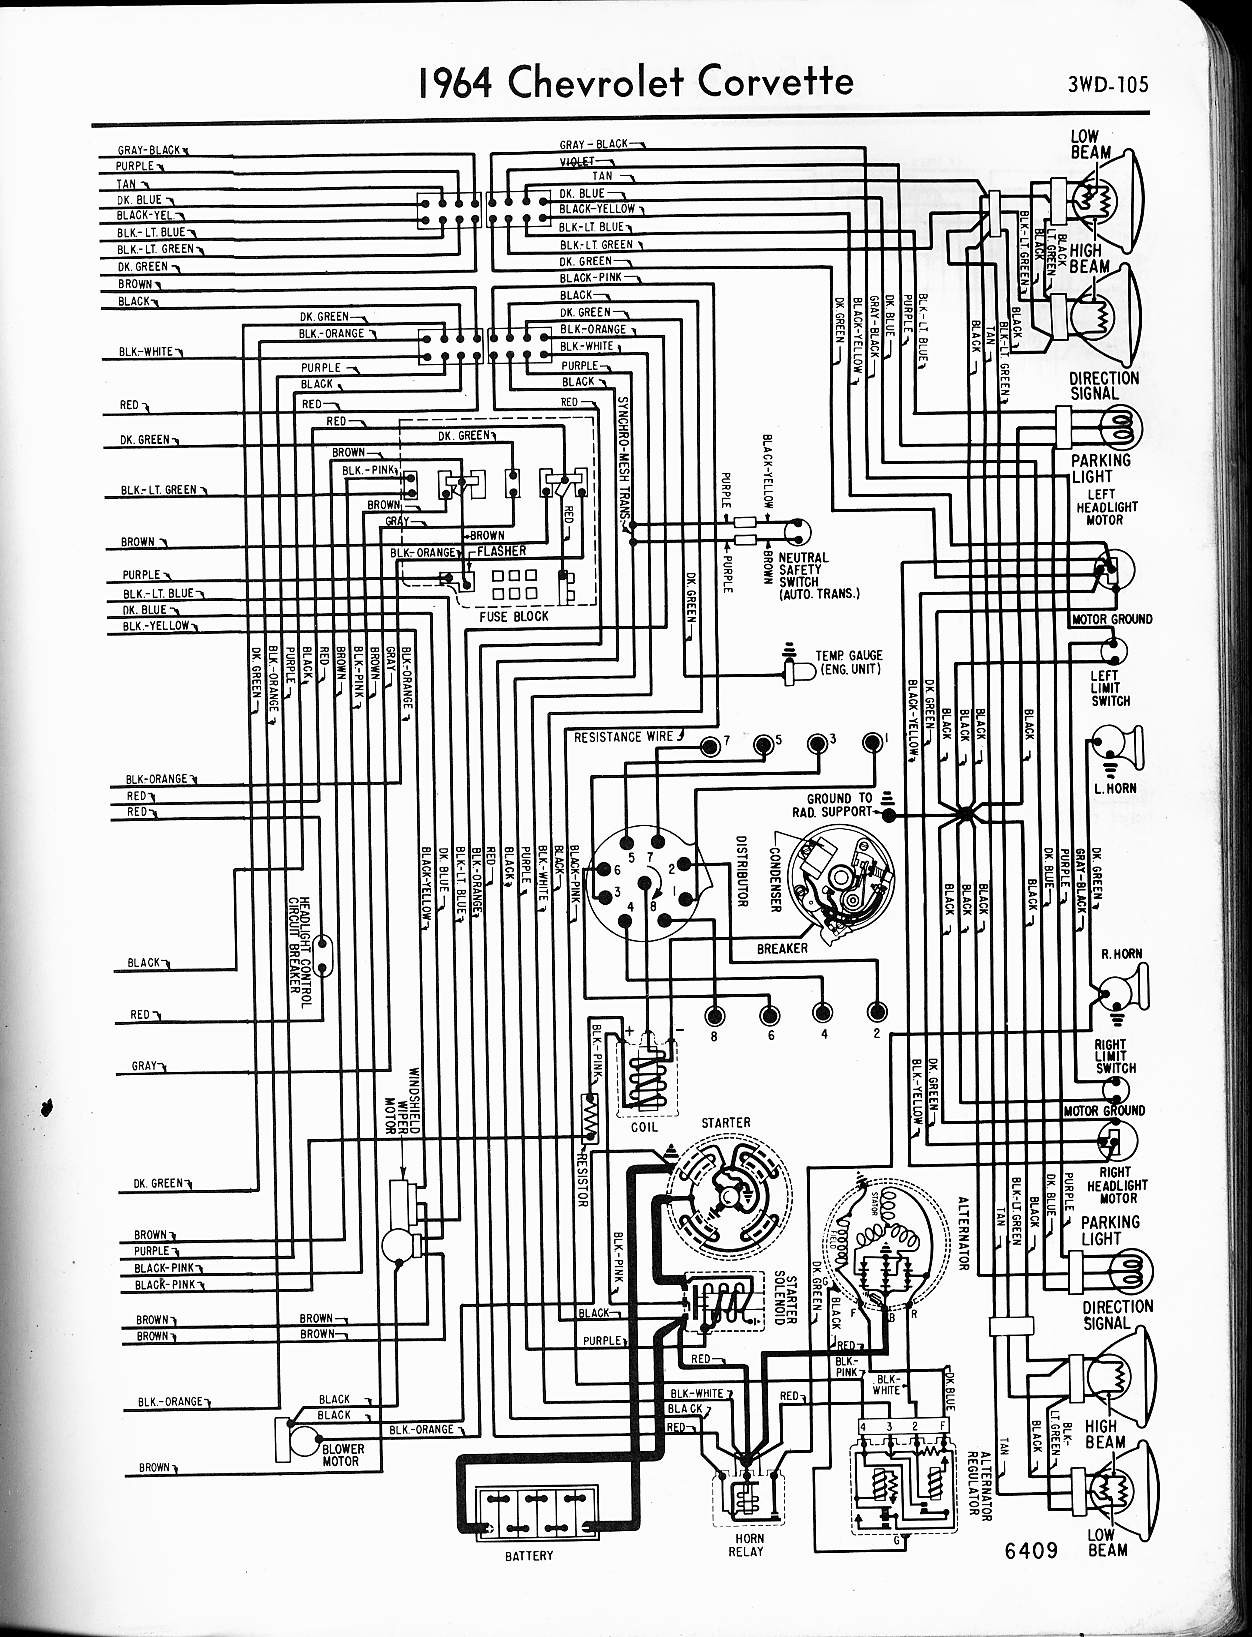 hight resolution of 1959 corvette wiring diagram wiring diagram67 corvette wiring diagram index listing of wiring diagrams72 corvette wiring